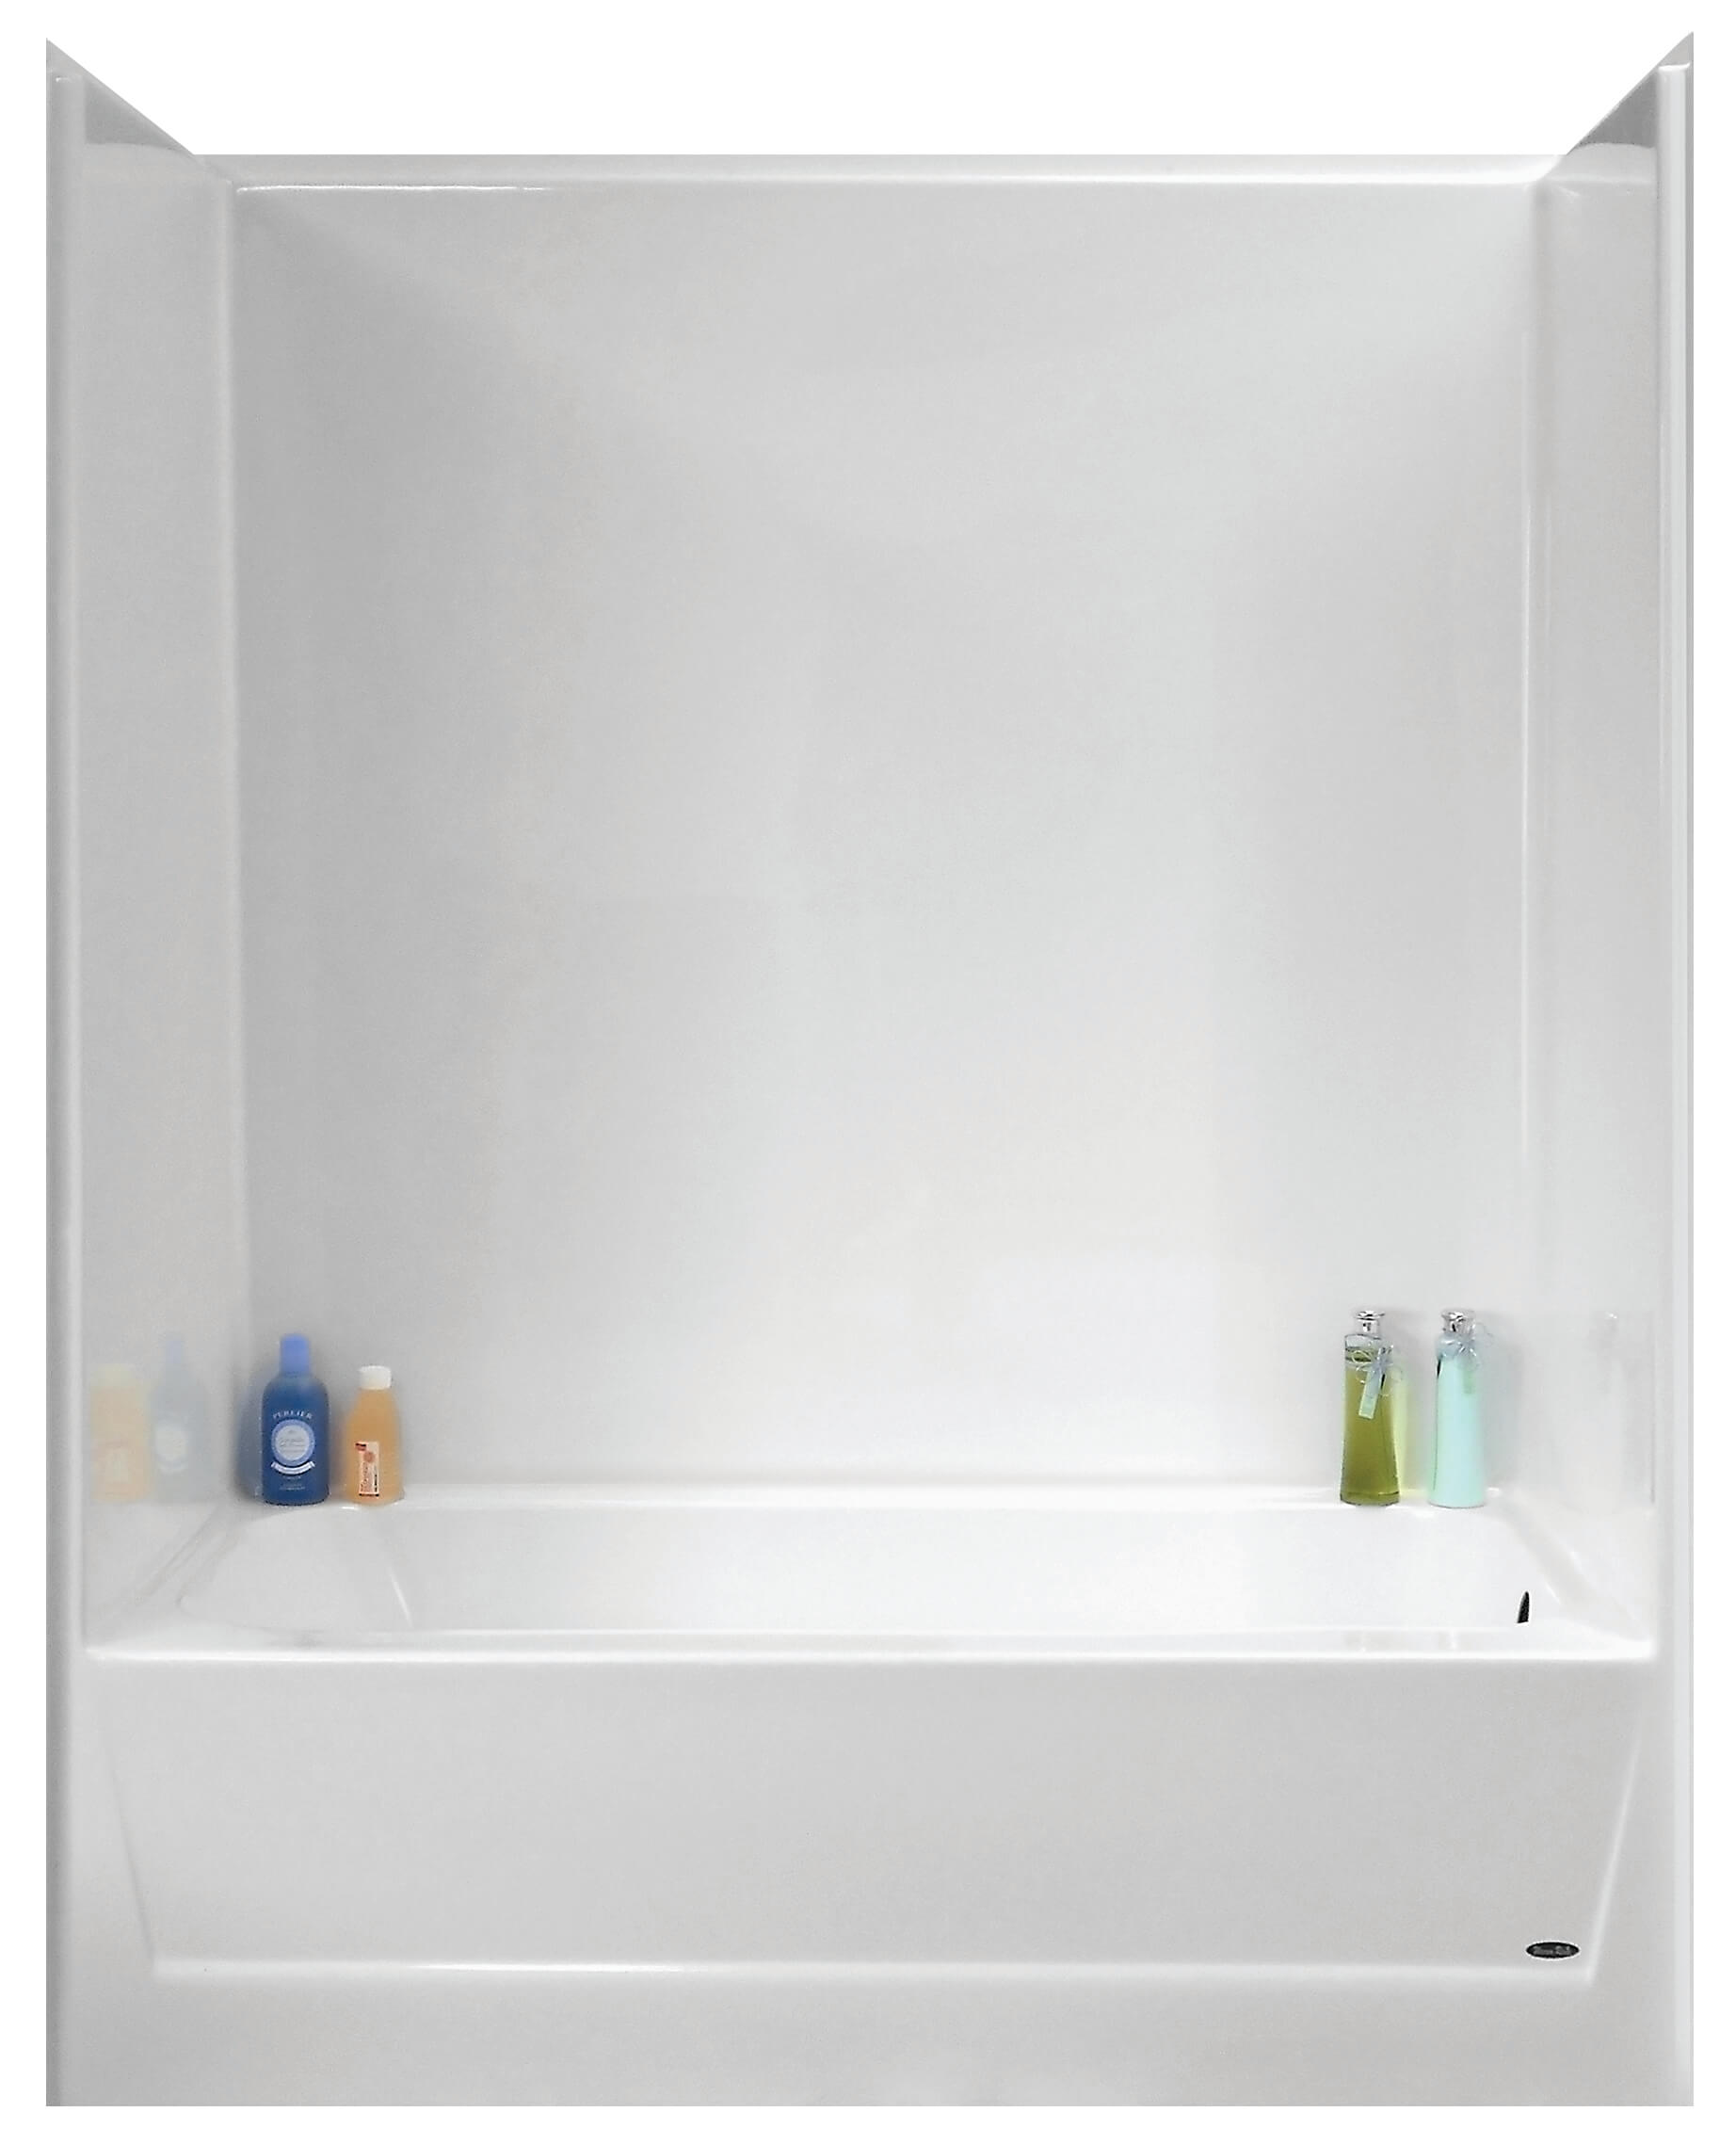 by bathroom kohler two about olympus tub standard seat camera stupendous handicap translina piece one bathtub decor contemporary units remodel jets gorgeous and with digital ideas shower combo craftworks